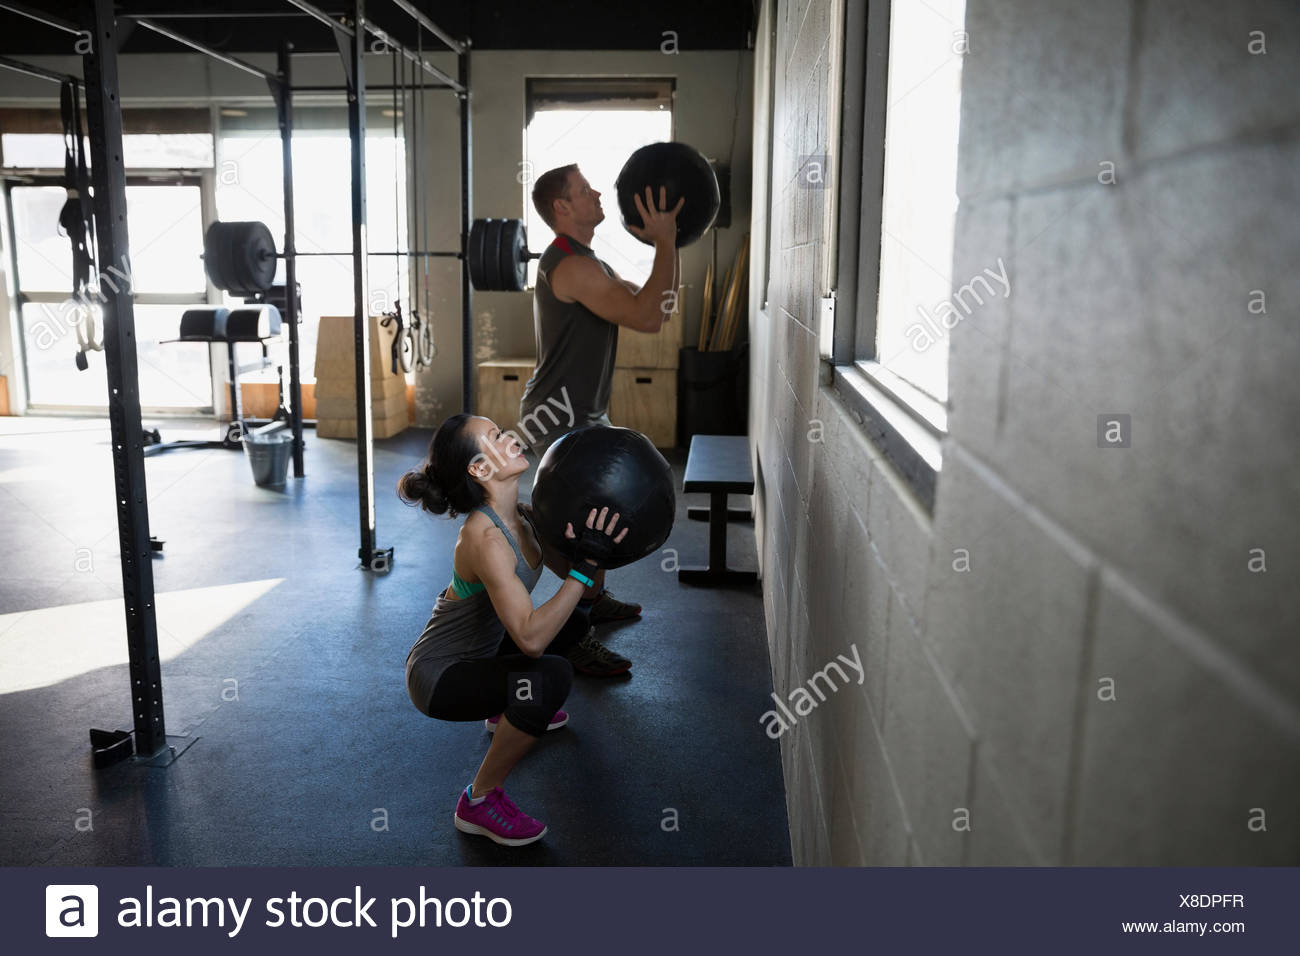 Man and woman squatting with medicine balls gym - Stock Image